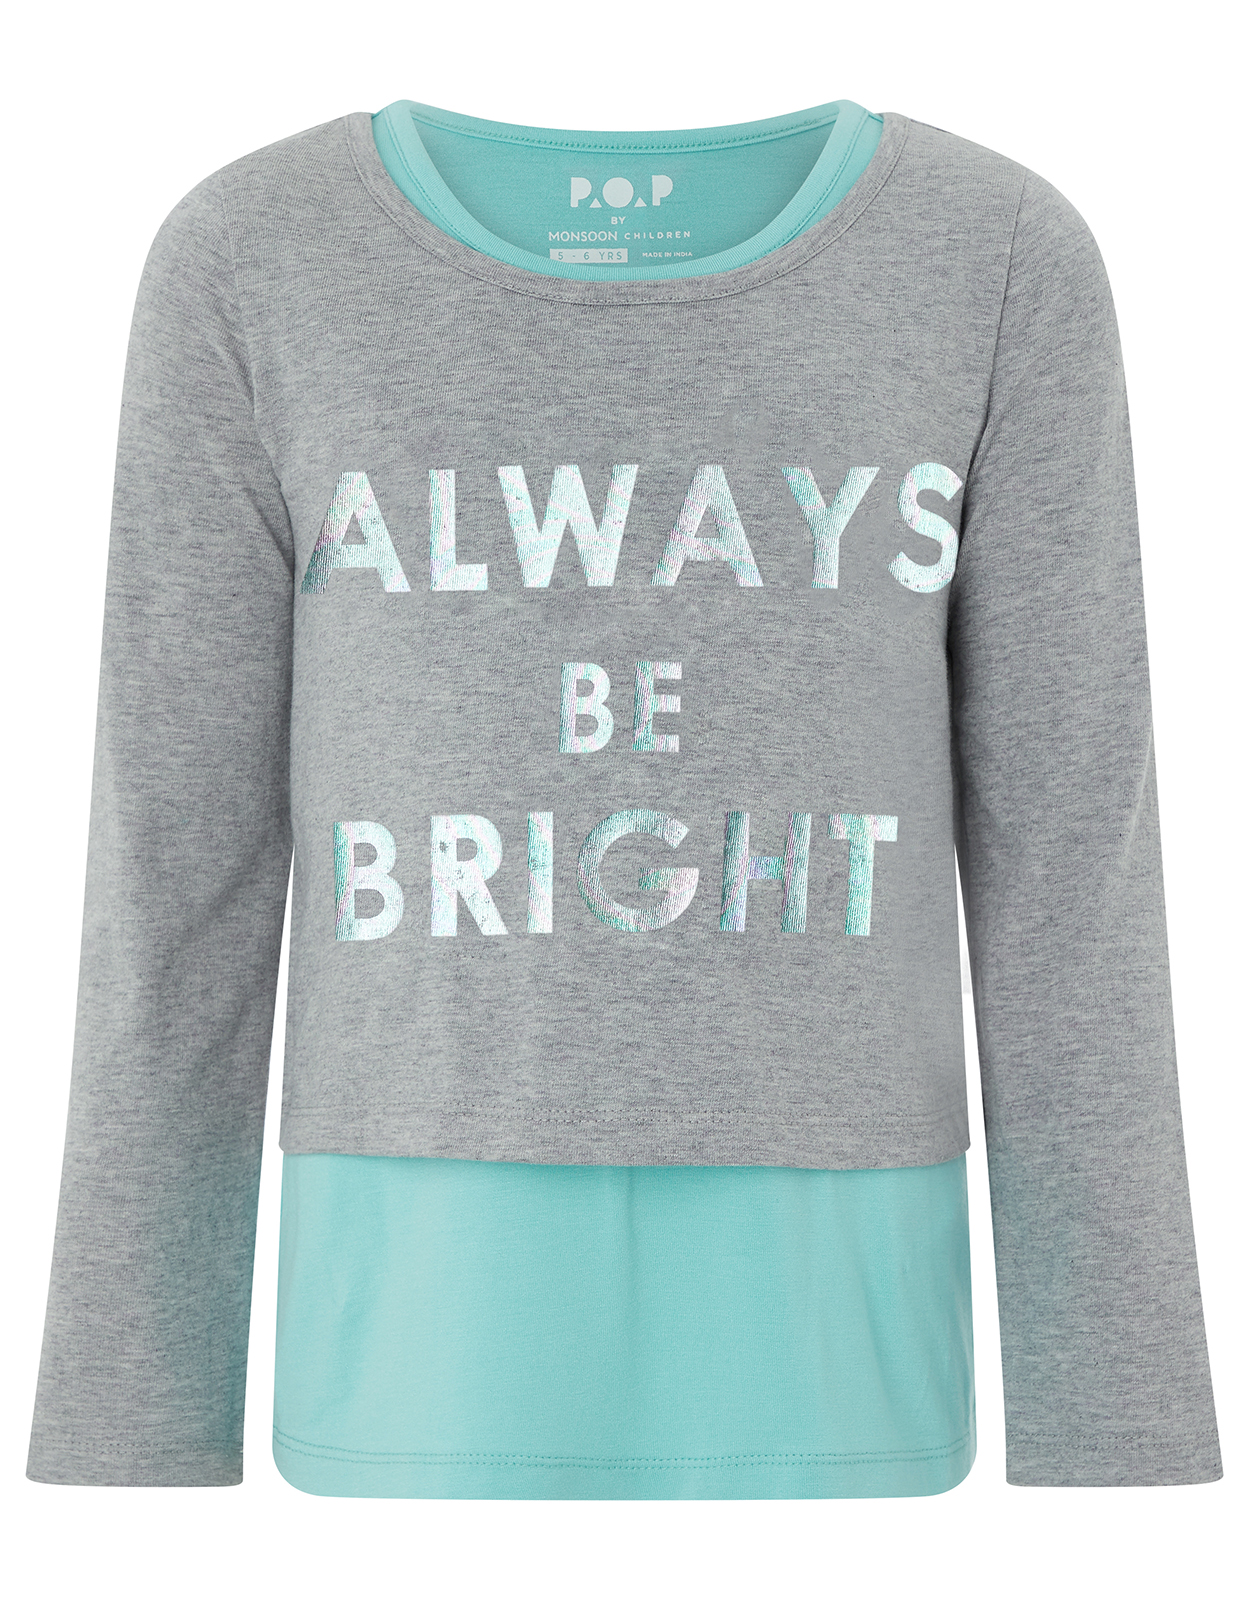 Monsoon Always Be Bright 2 in 1 Top